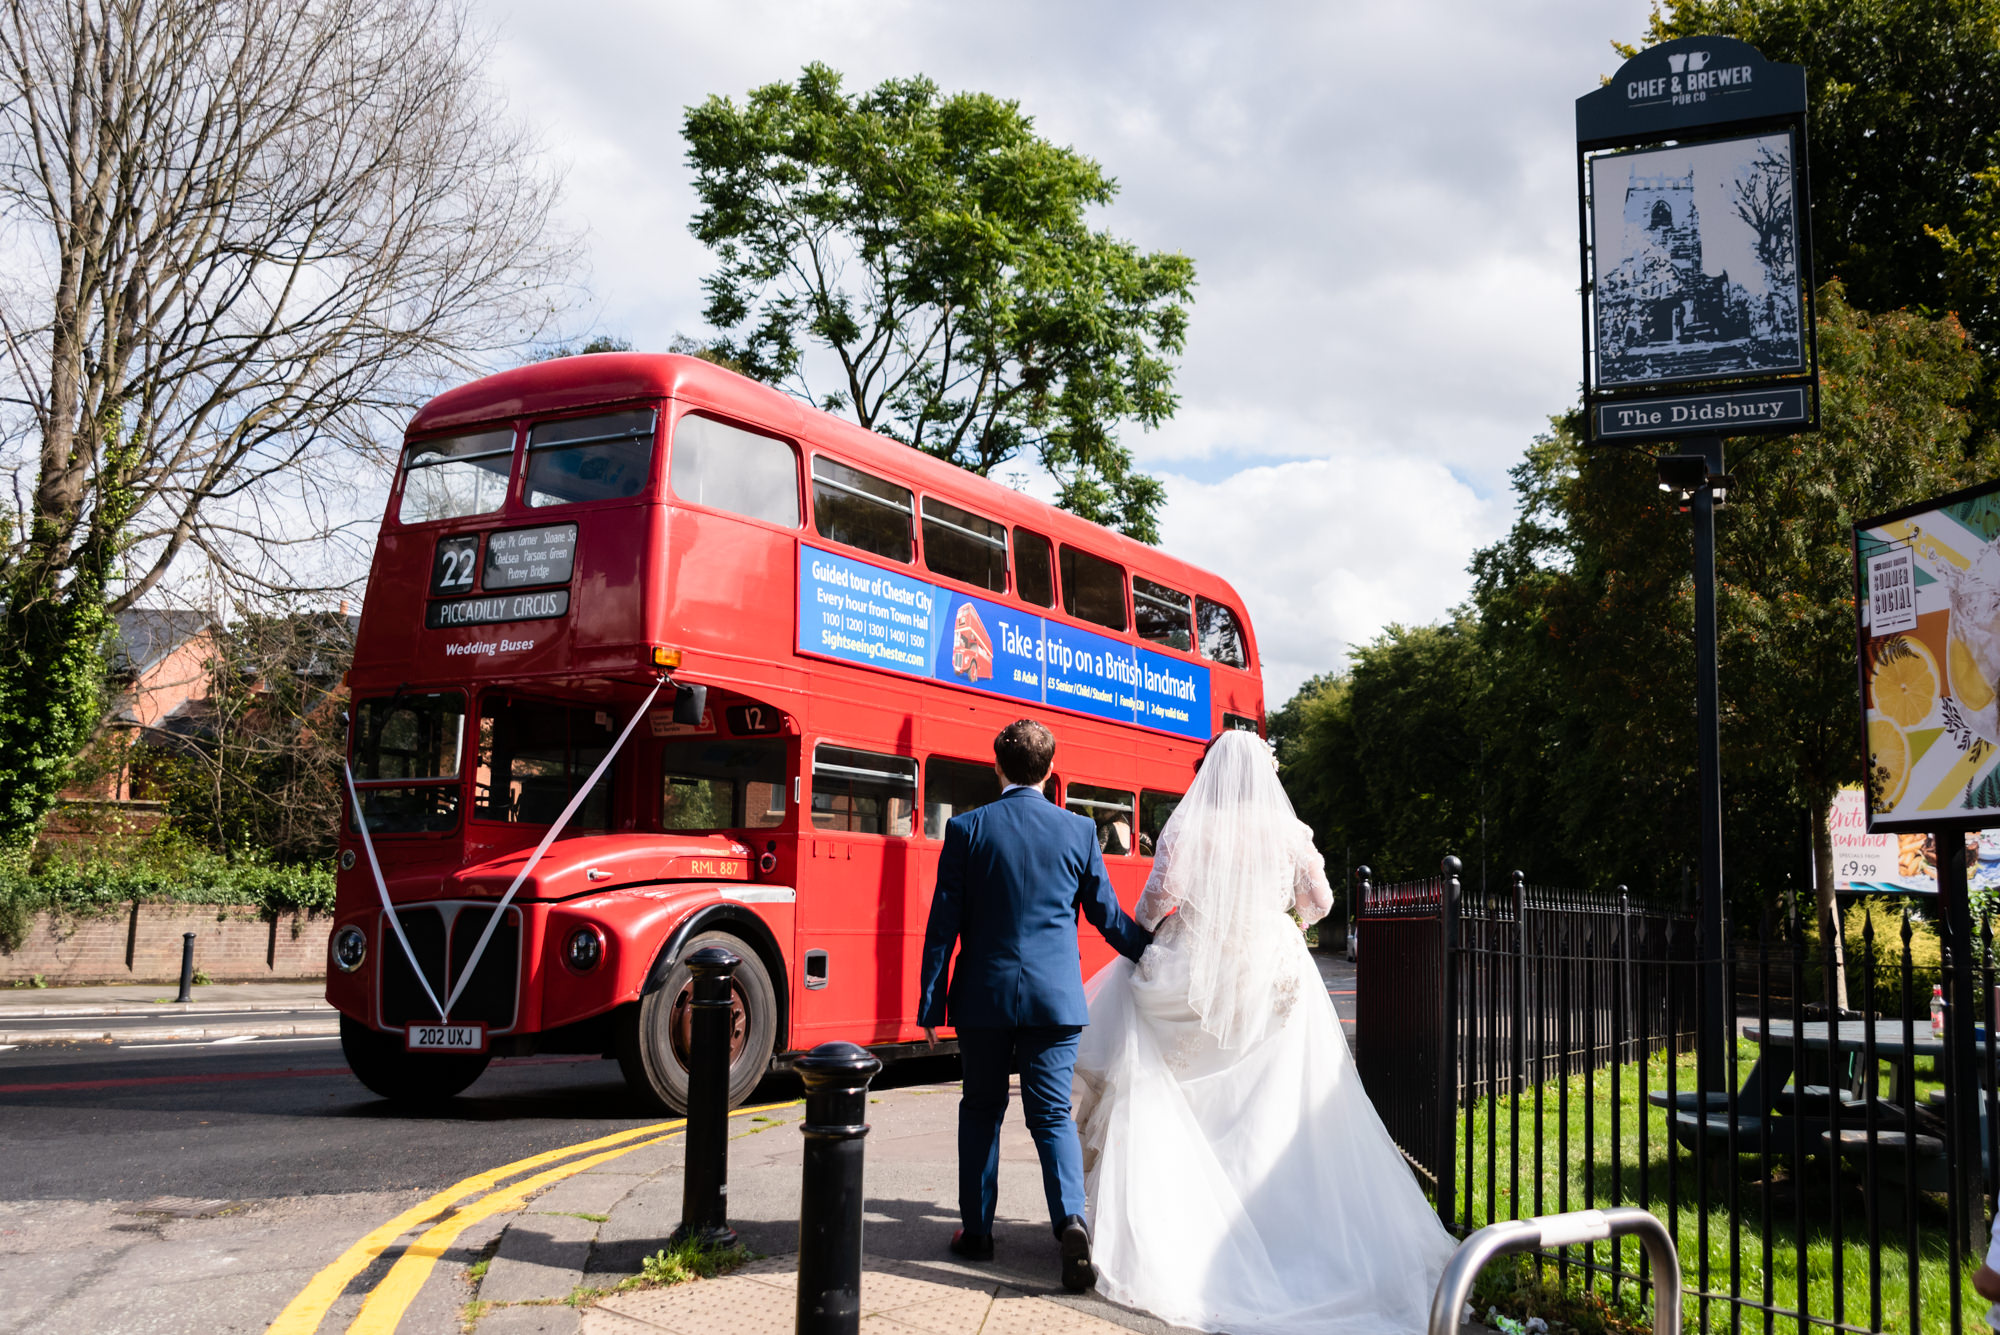 Bride and groom walking towards the red double decker bus they hired